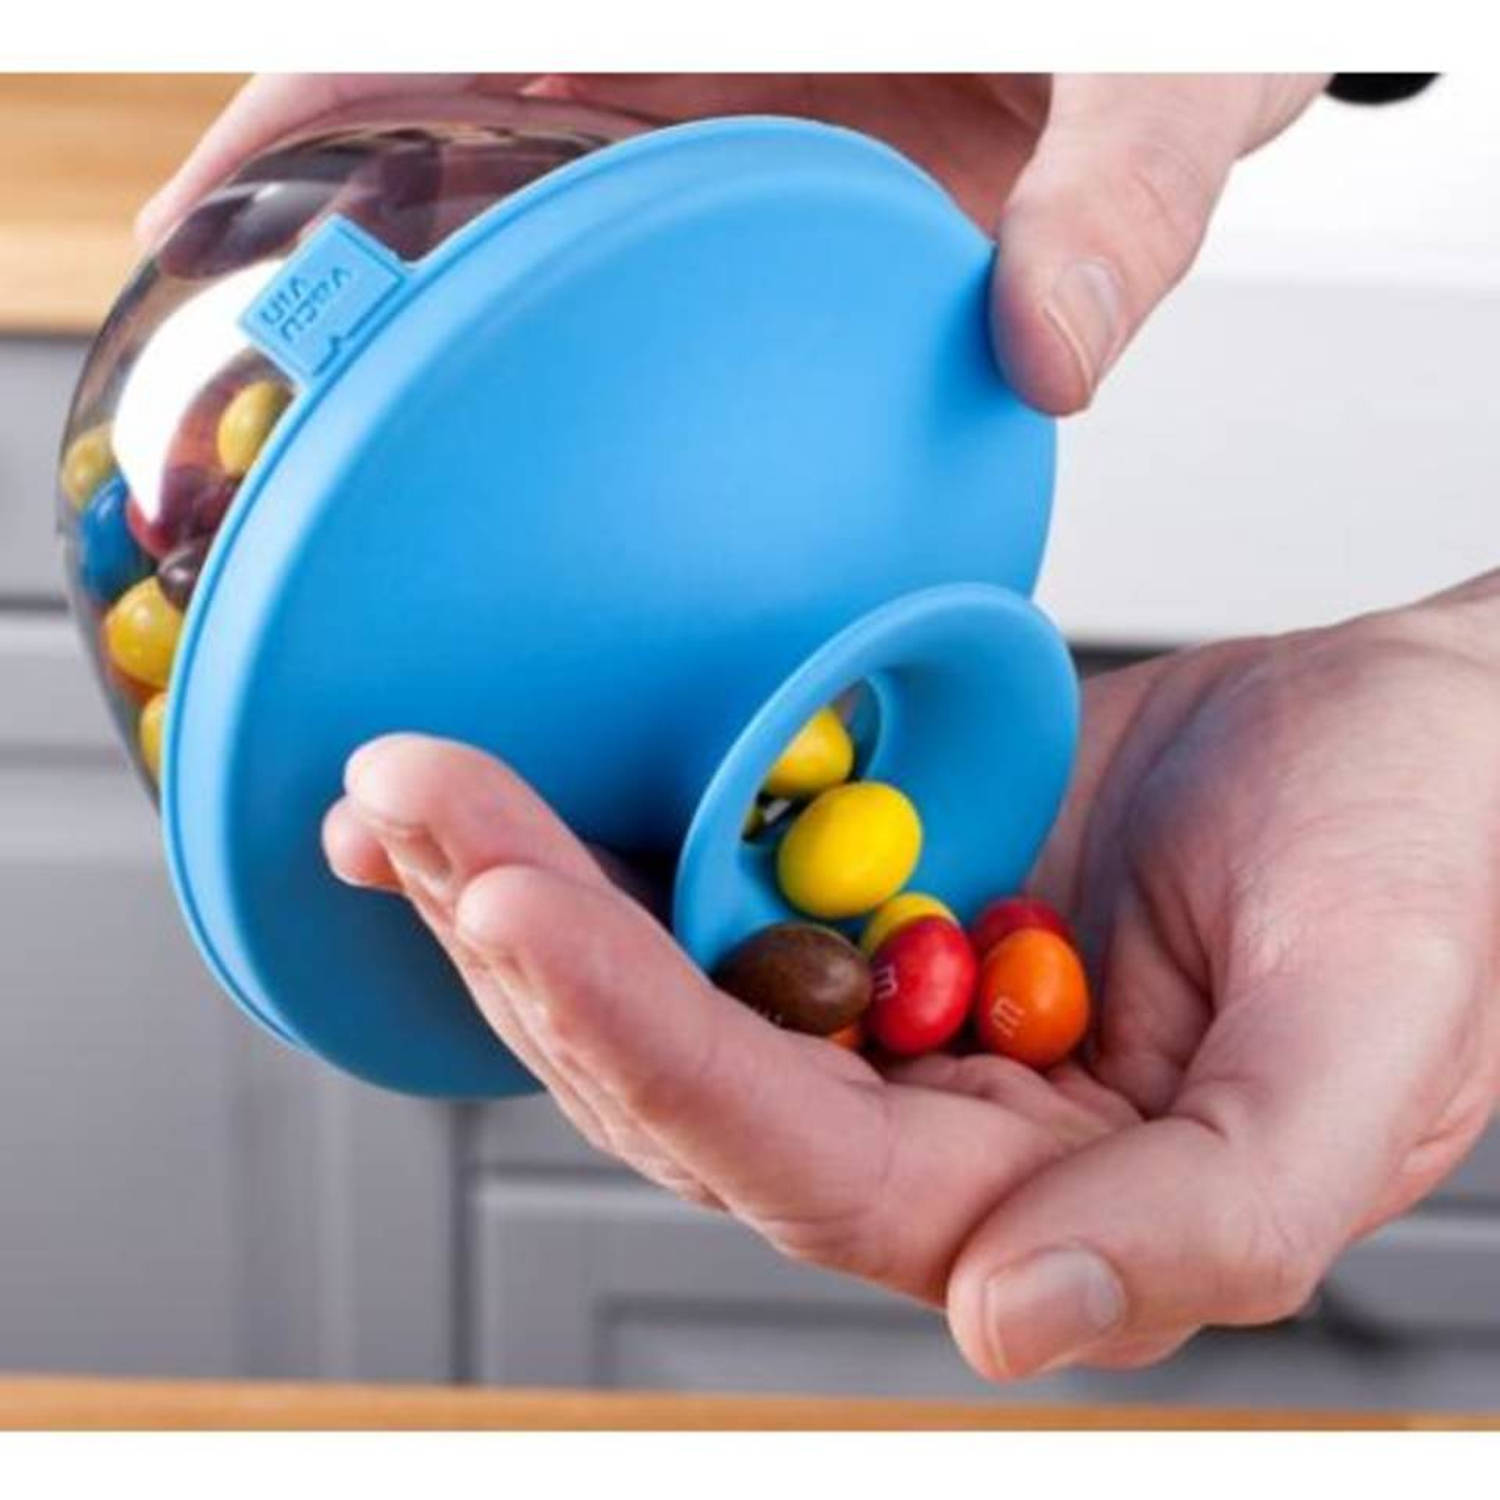 Popsome candy & nuts 0,45 liter, blauw - tomorrow's kitchen